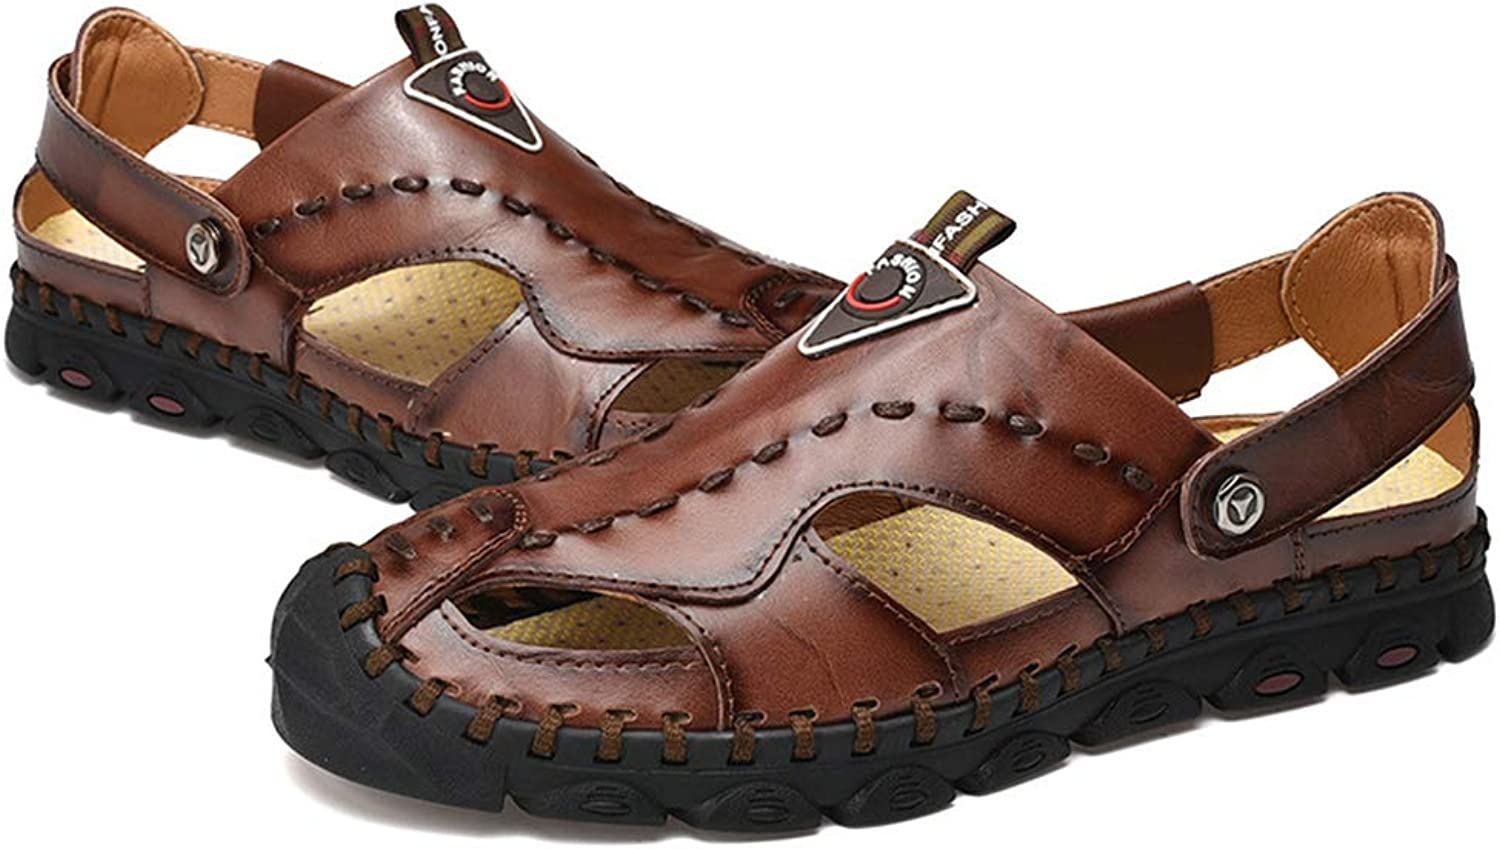 DYFAR Sports Outdoor Sandals Men's Leather Fisherman Breathable Summer Casual Adjustable Strap shoes Walking Beach Travel for Men Sandals shoes Size6 11 12 8.5 9.5 10, Brown, 40